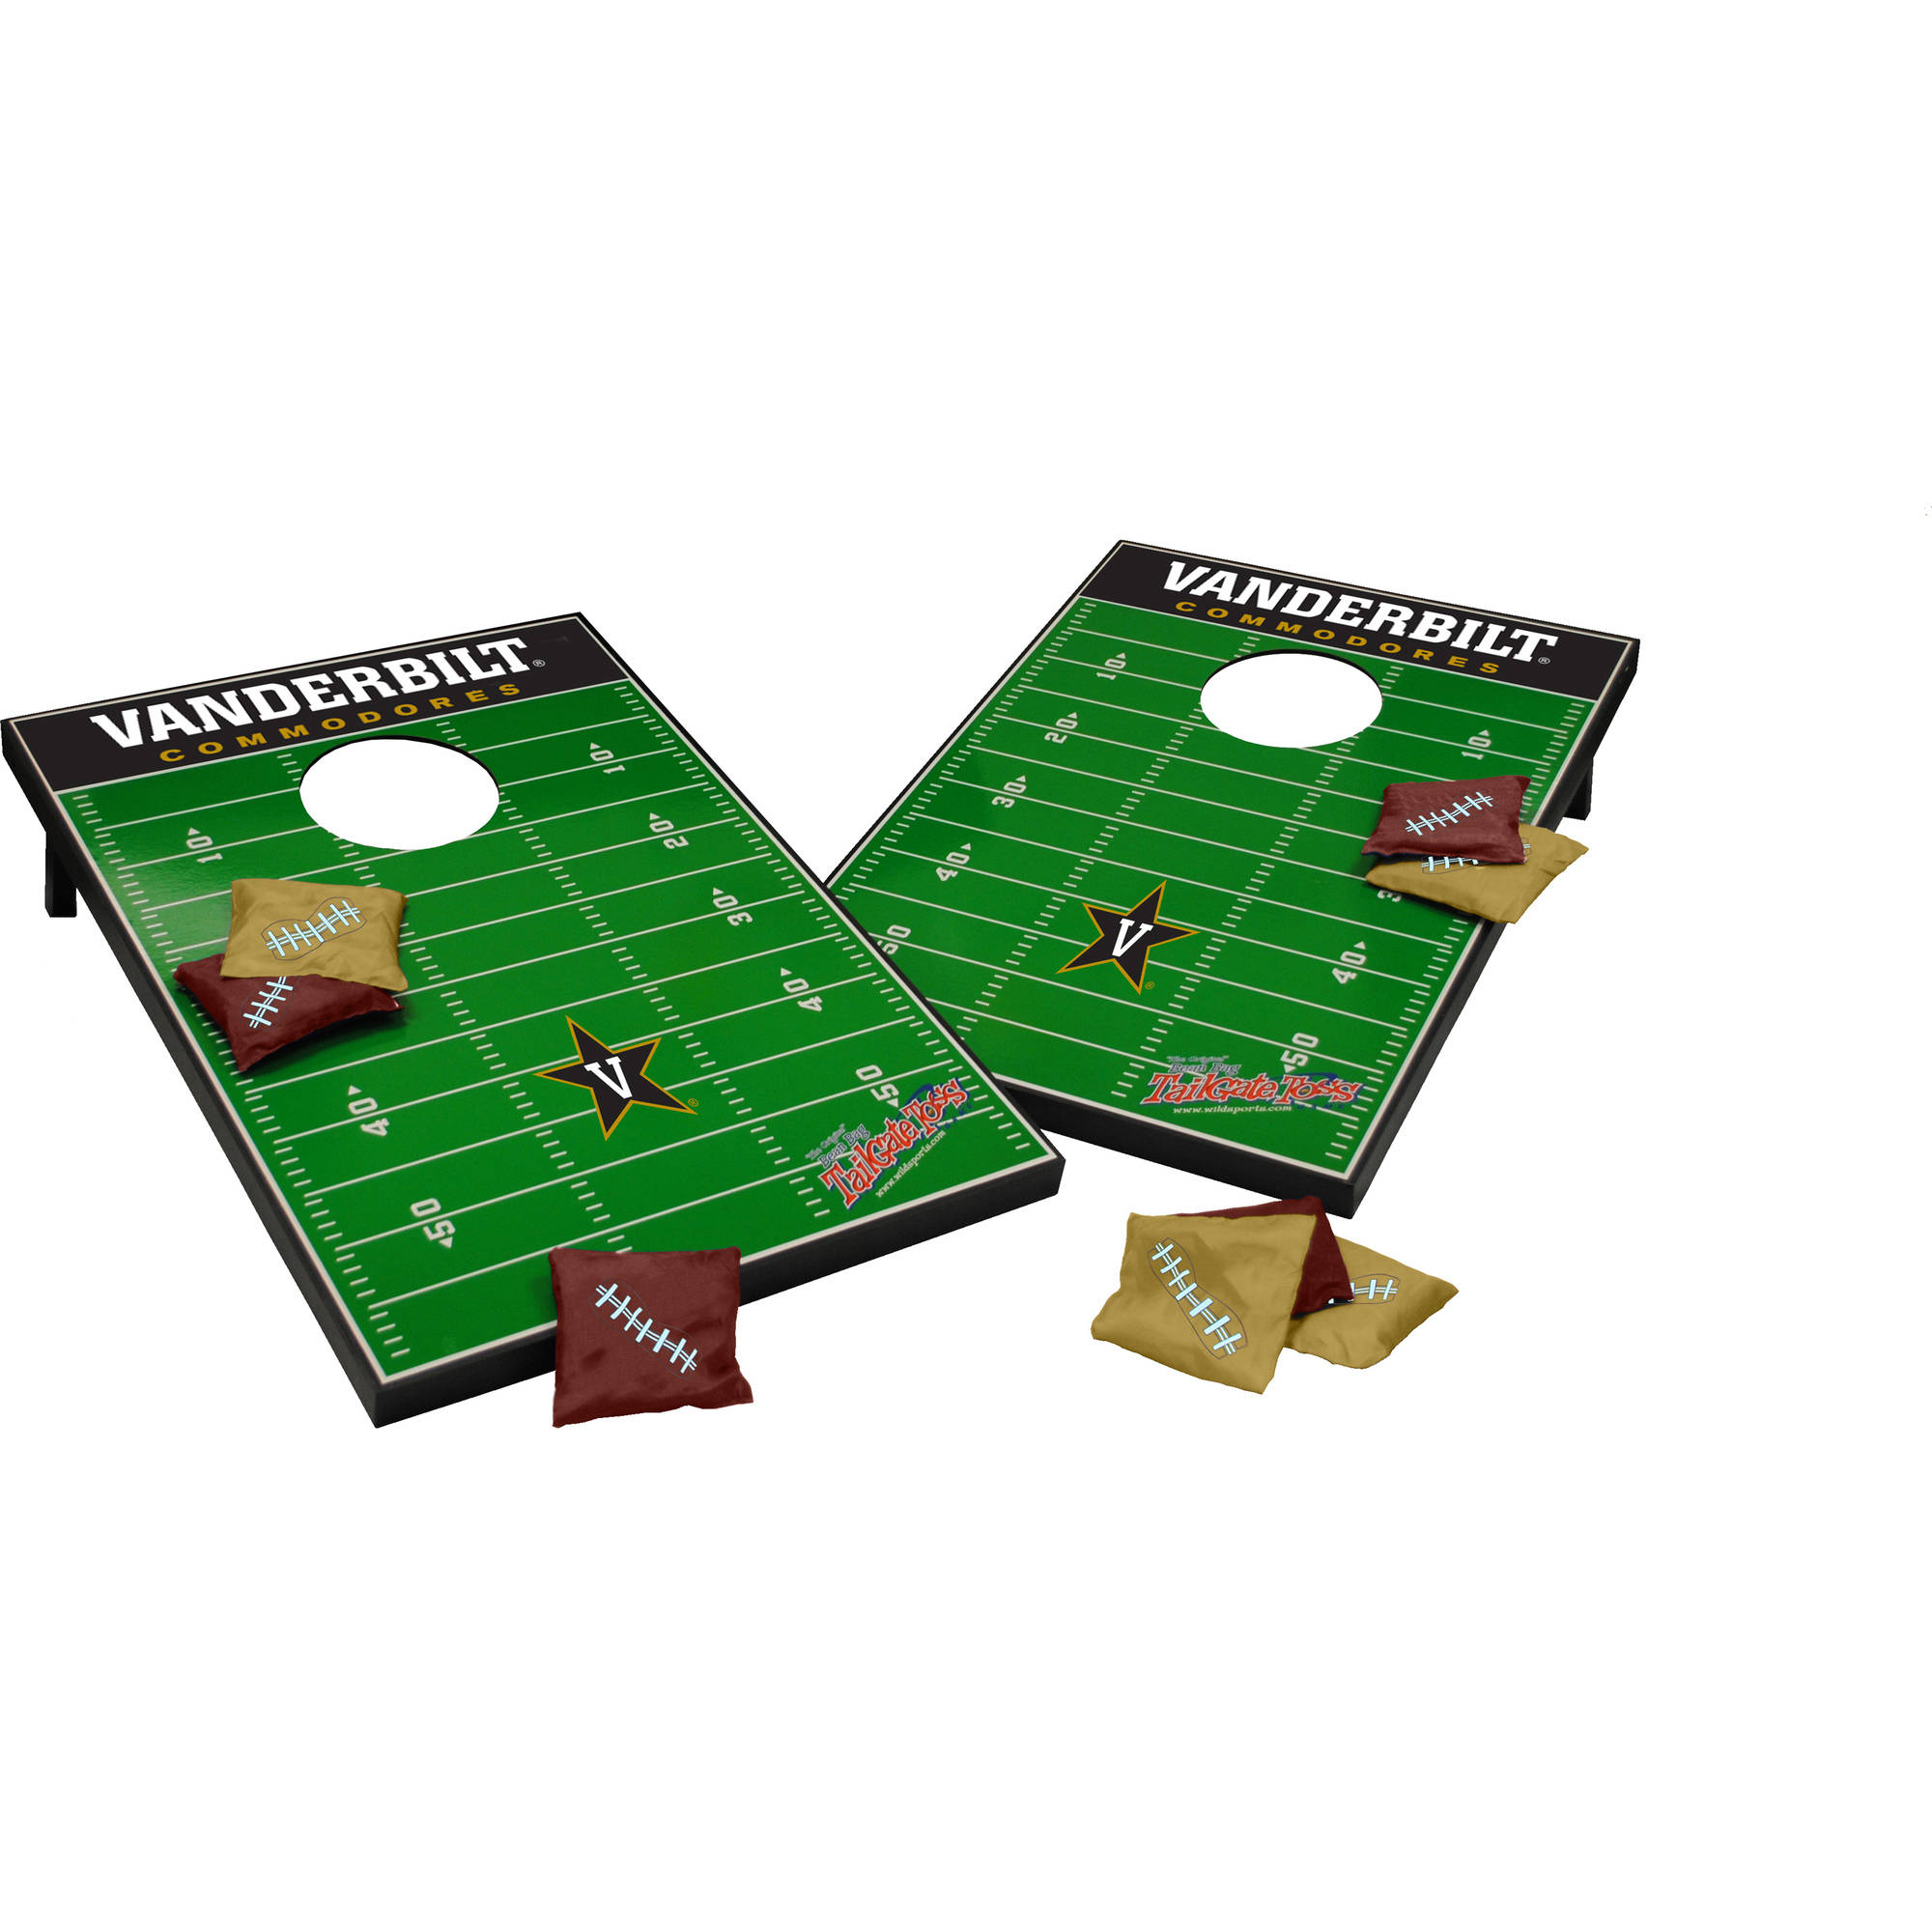 Wild Sports Collegiate Vanderbilt Commodores 2x3 Field Tailgate Toss by Wild Sports